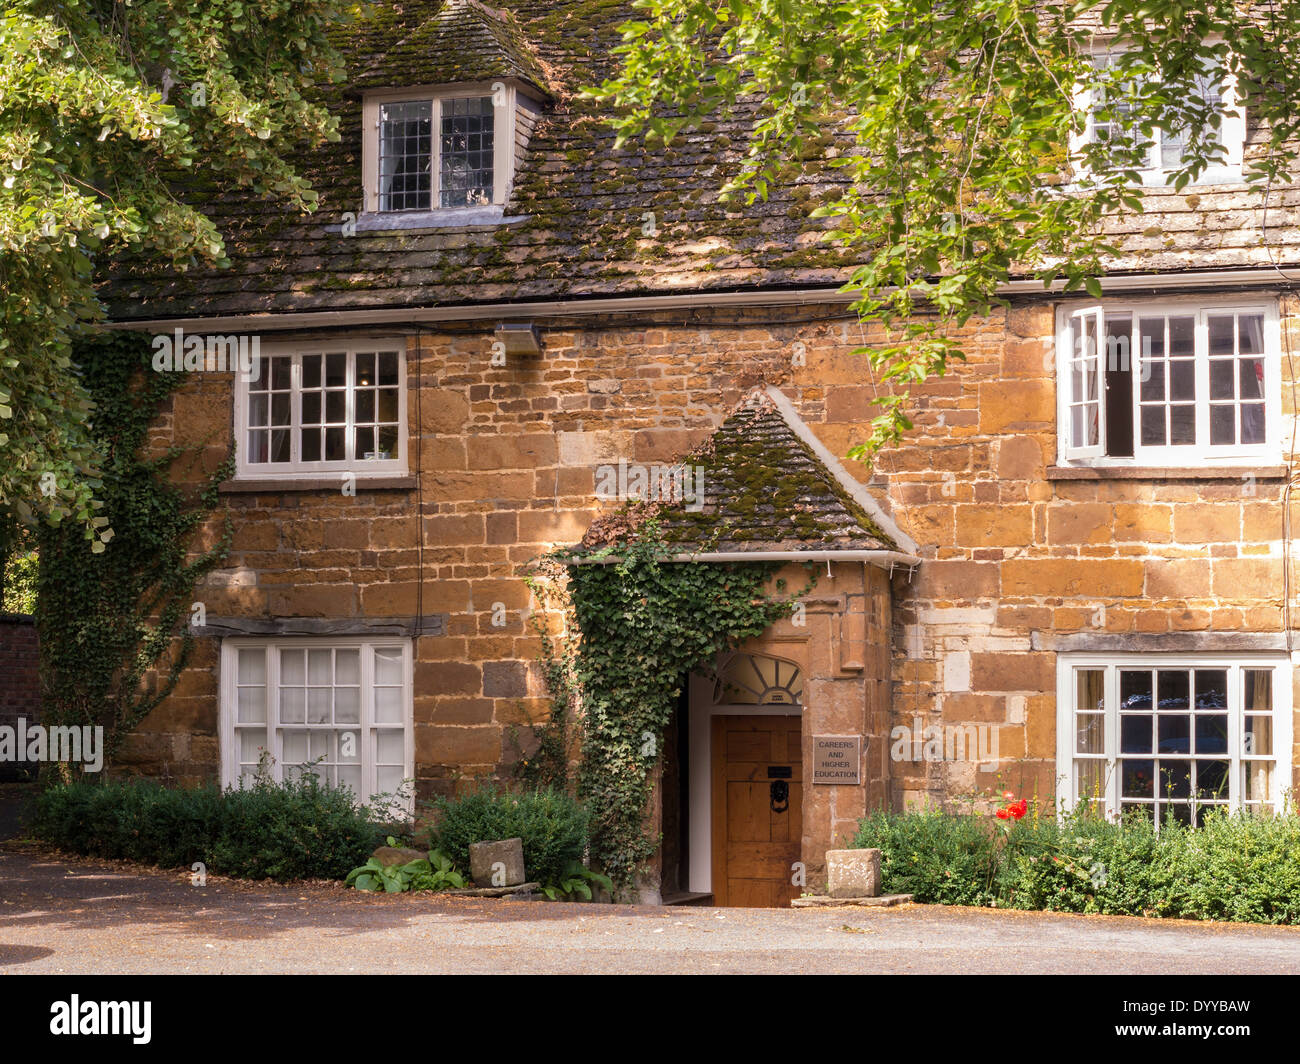 Careers and Higher Education Office in old stone cottage, Uppingham Private School, Rutland, England, UK Stock Photo